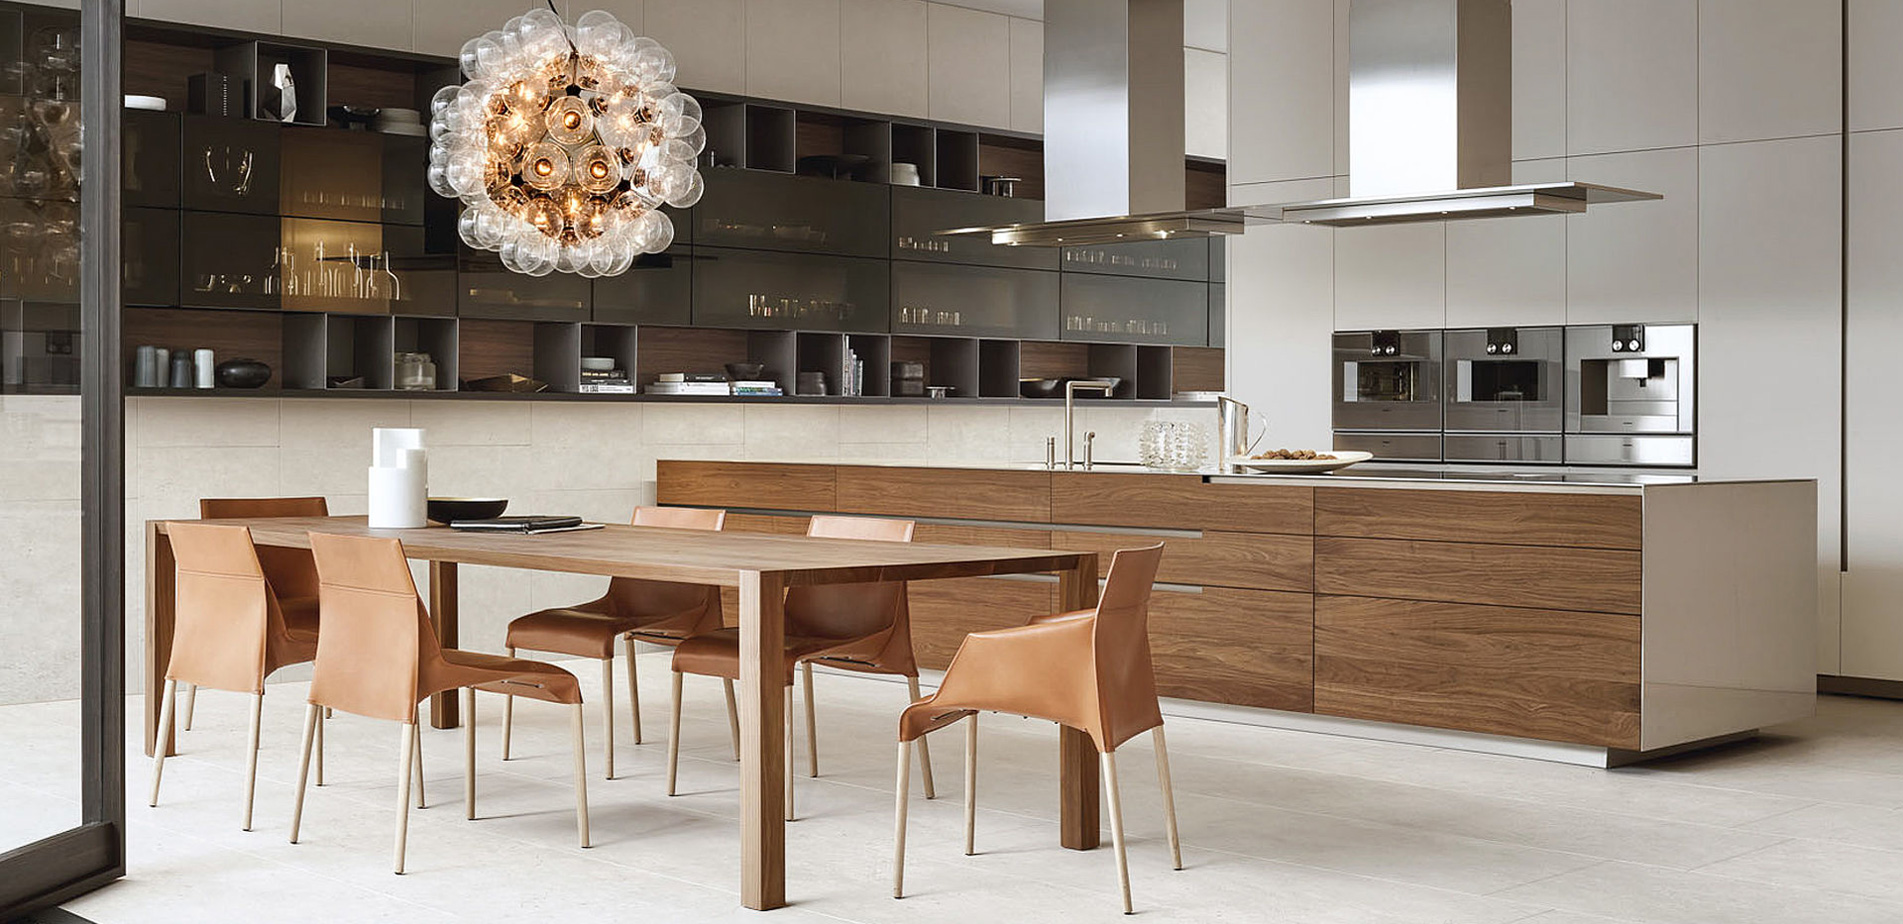 Poliform Phoenix Kitchen